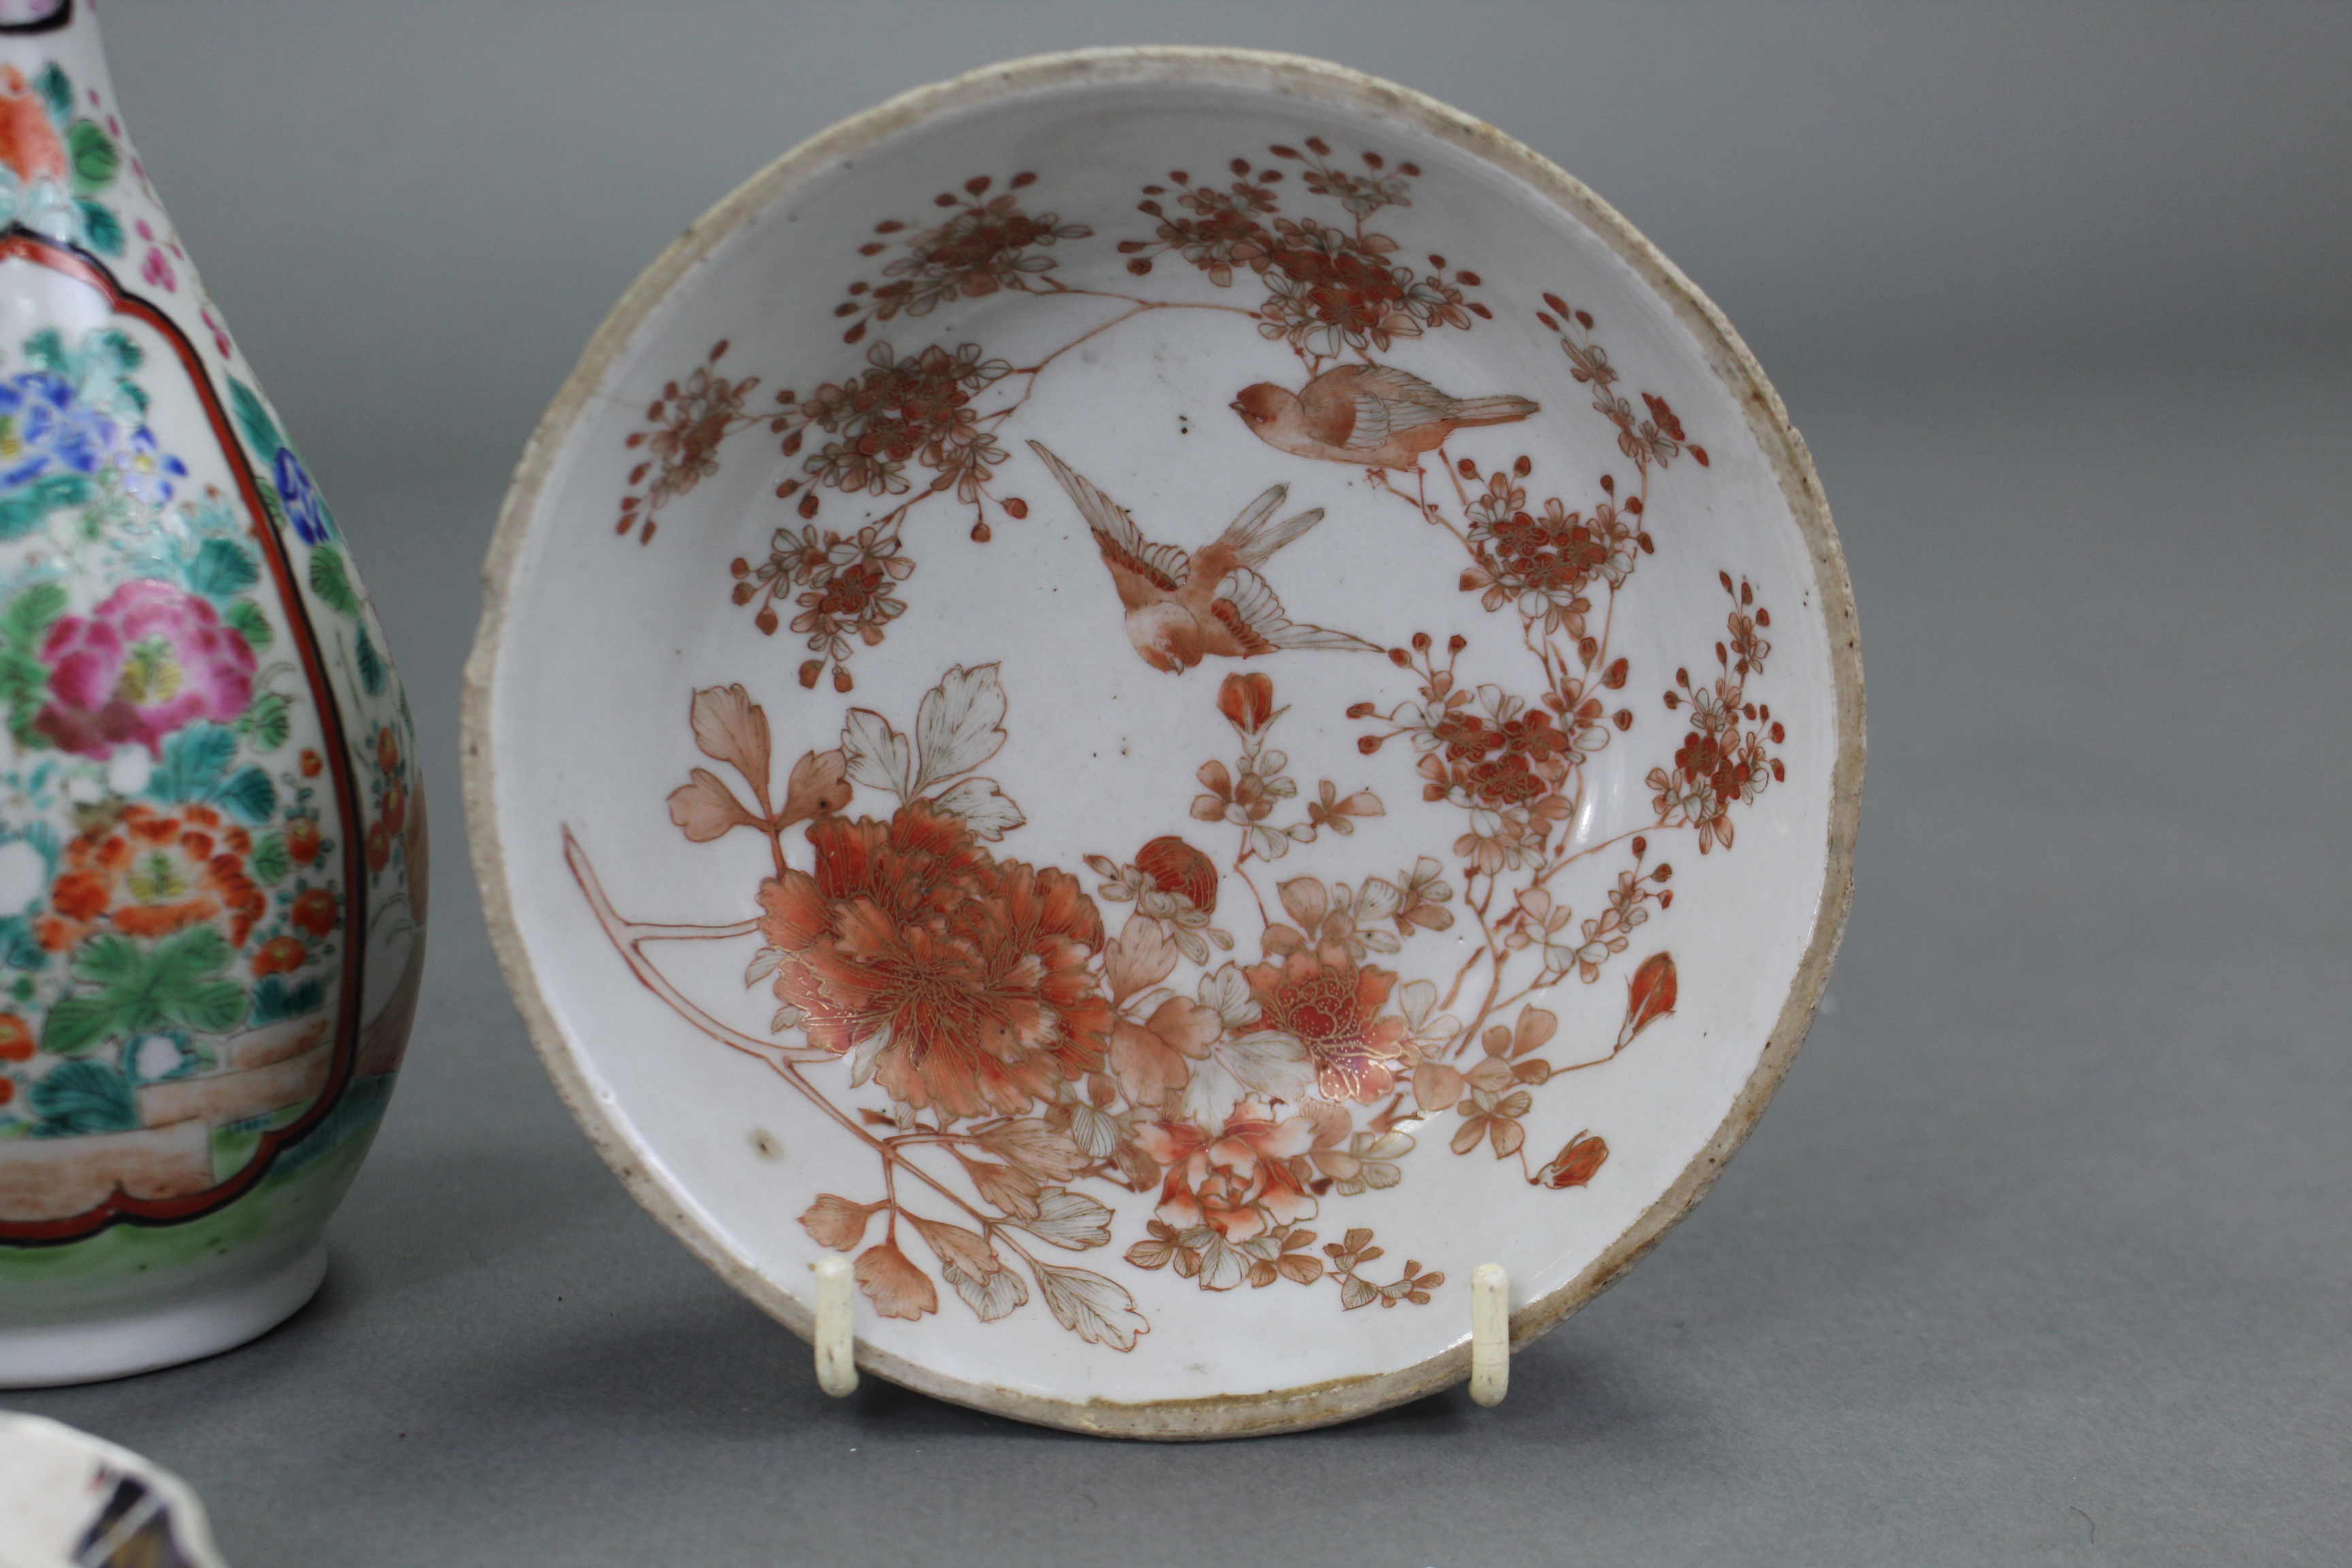 Lot 389 - An 18th century Japanese Arita saucer dish painted in blue with a circle of pine, bamboo, & prunus